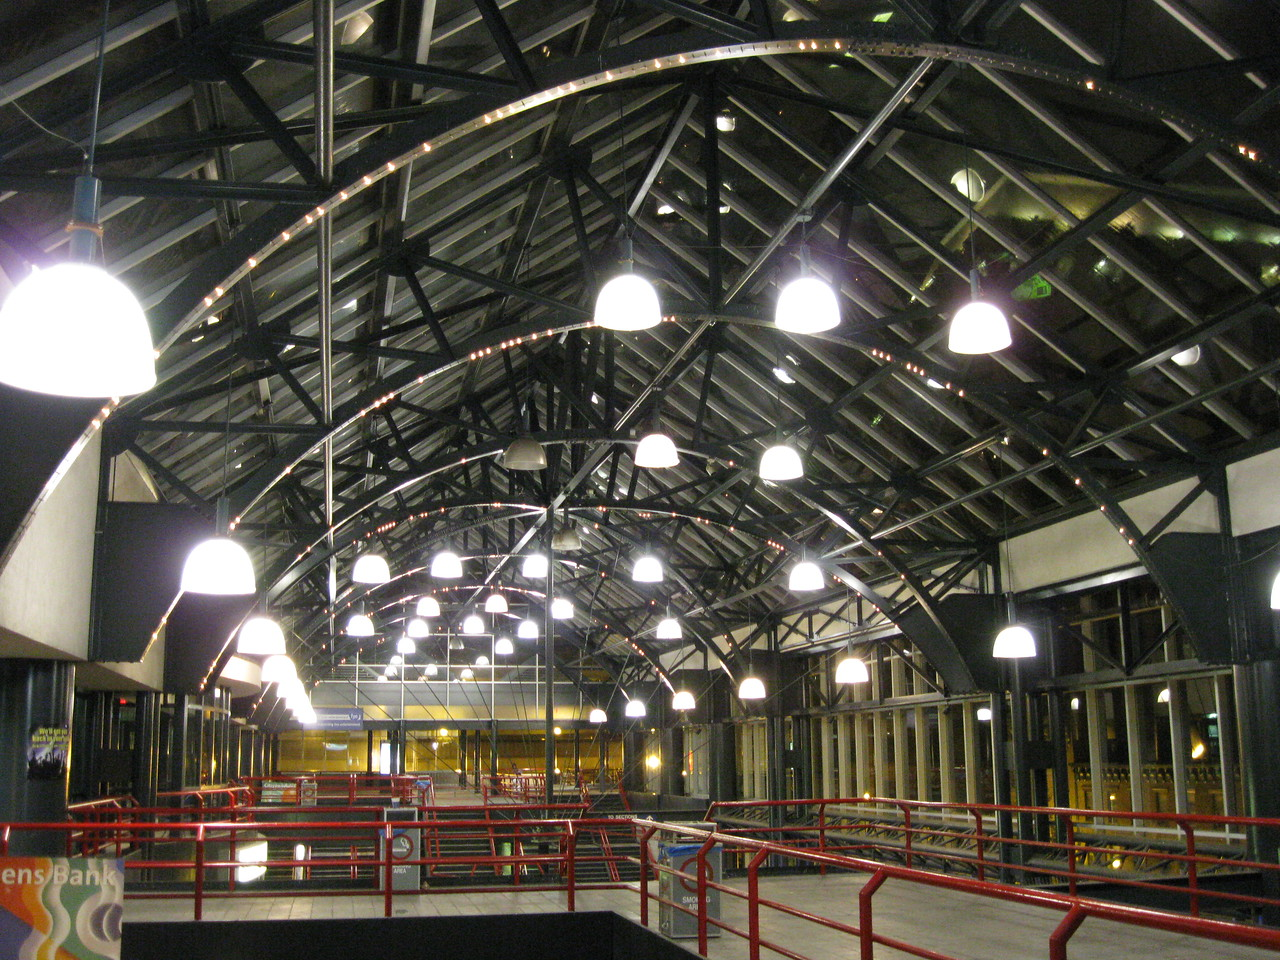 The Times Union Center porch ceiling at night.